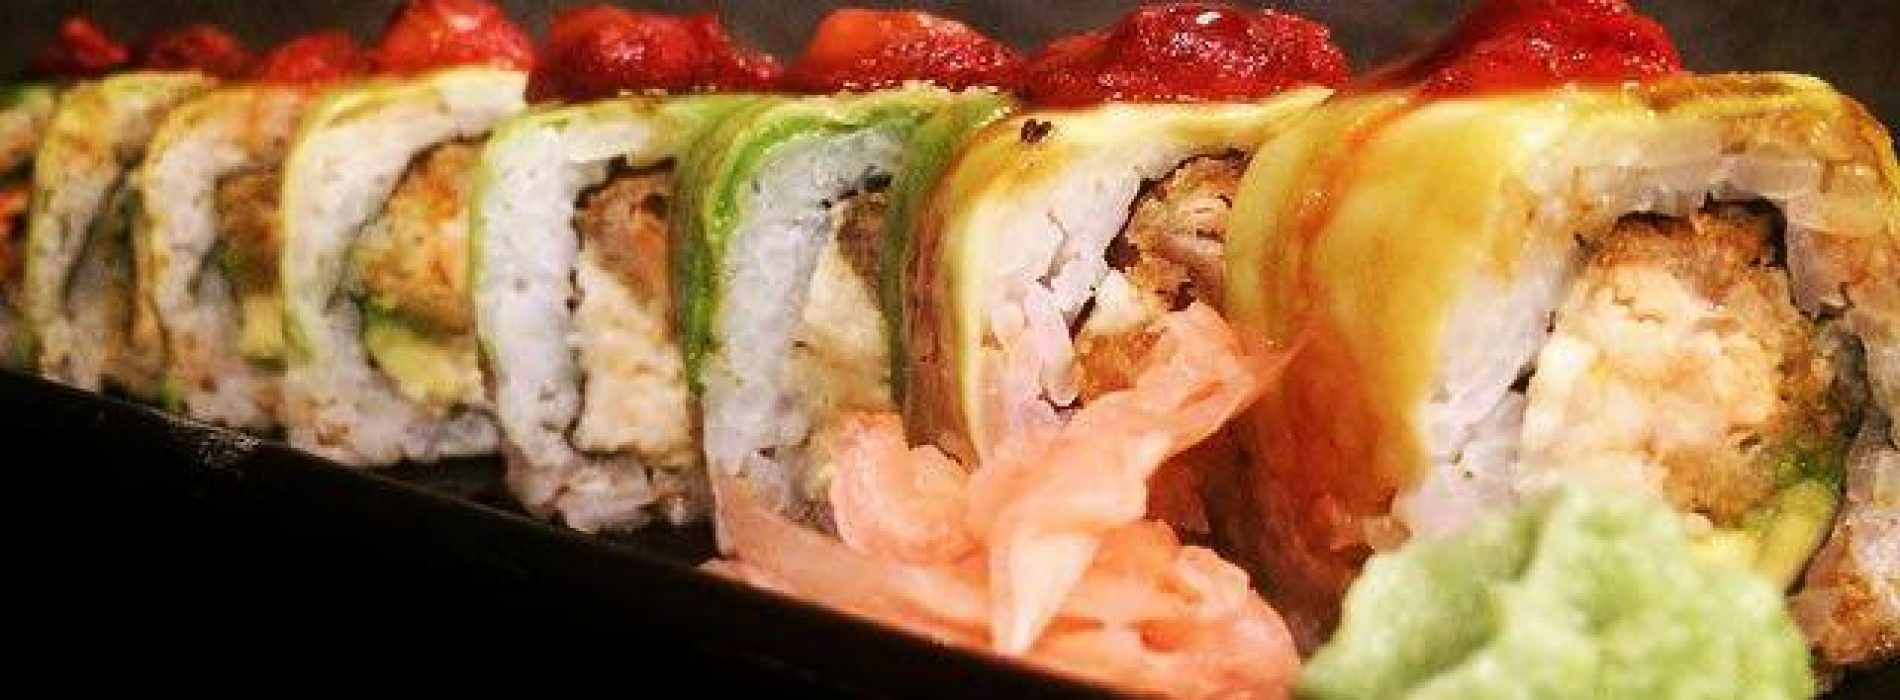 Kuro Club Roma, da The Bruschetta a sushi e cocktail nel quartiere Trieste